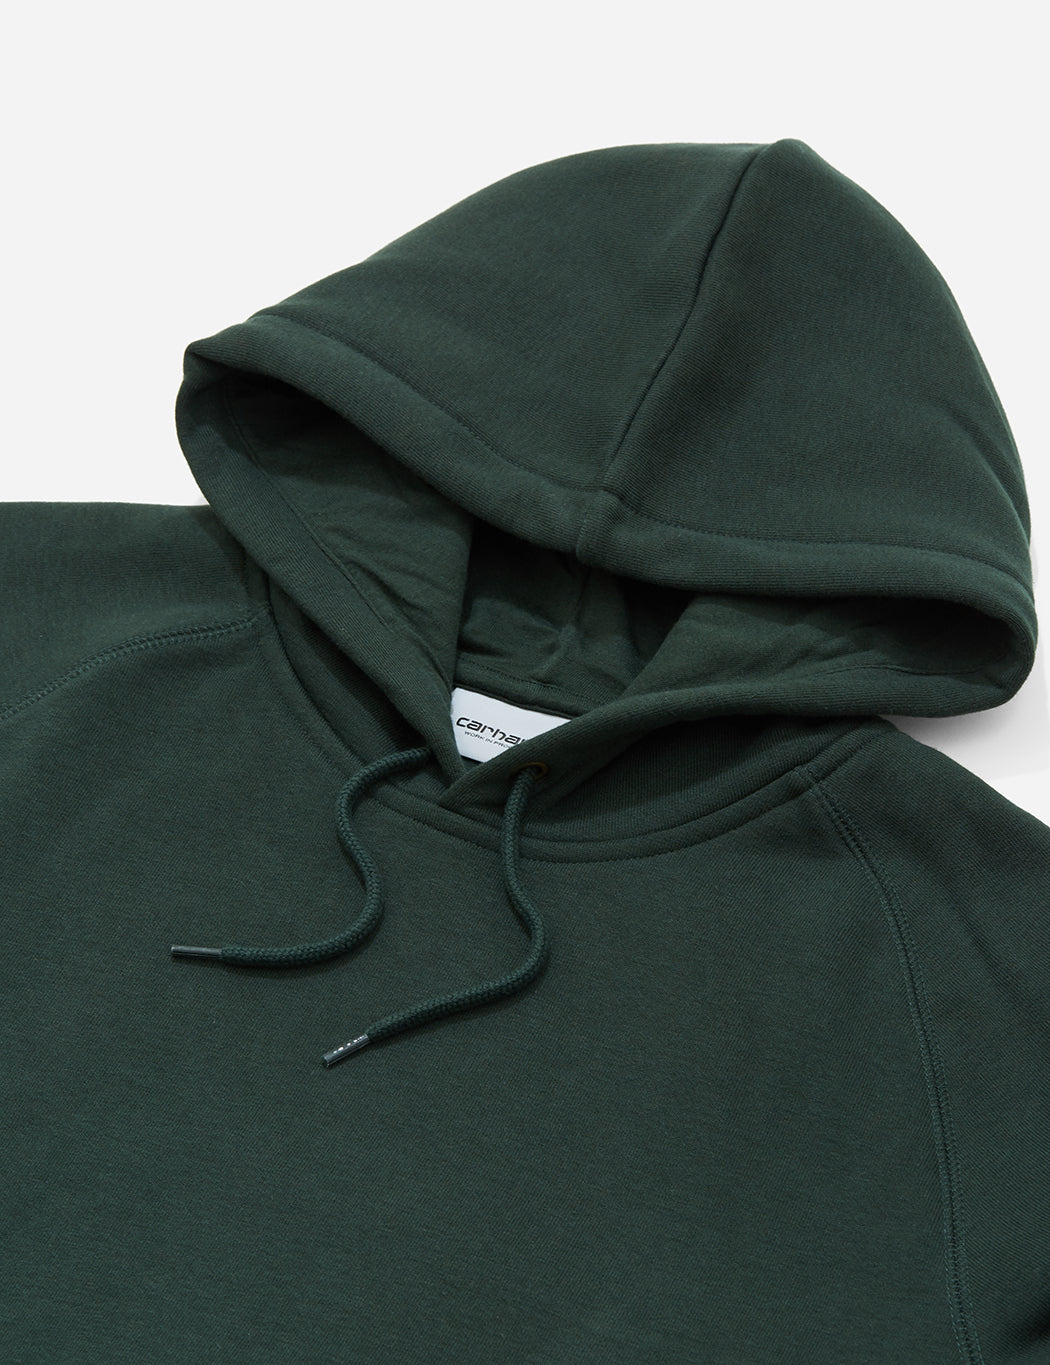 Carhartt Chase Hooded Sweatshirt - Loden Green